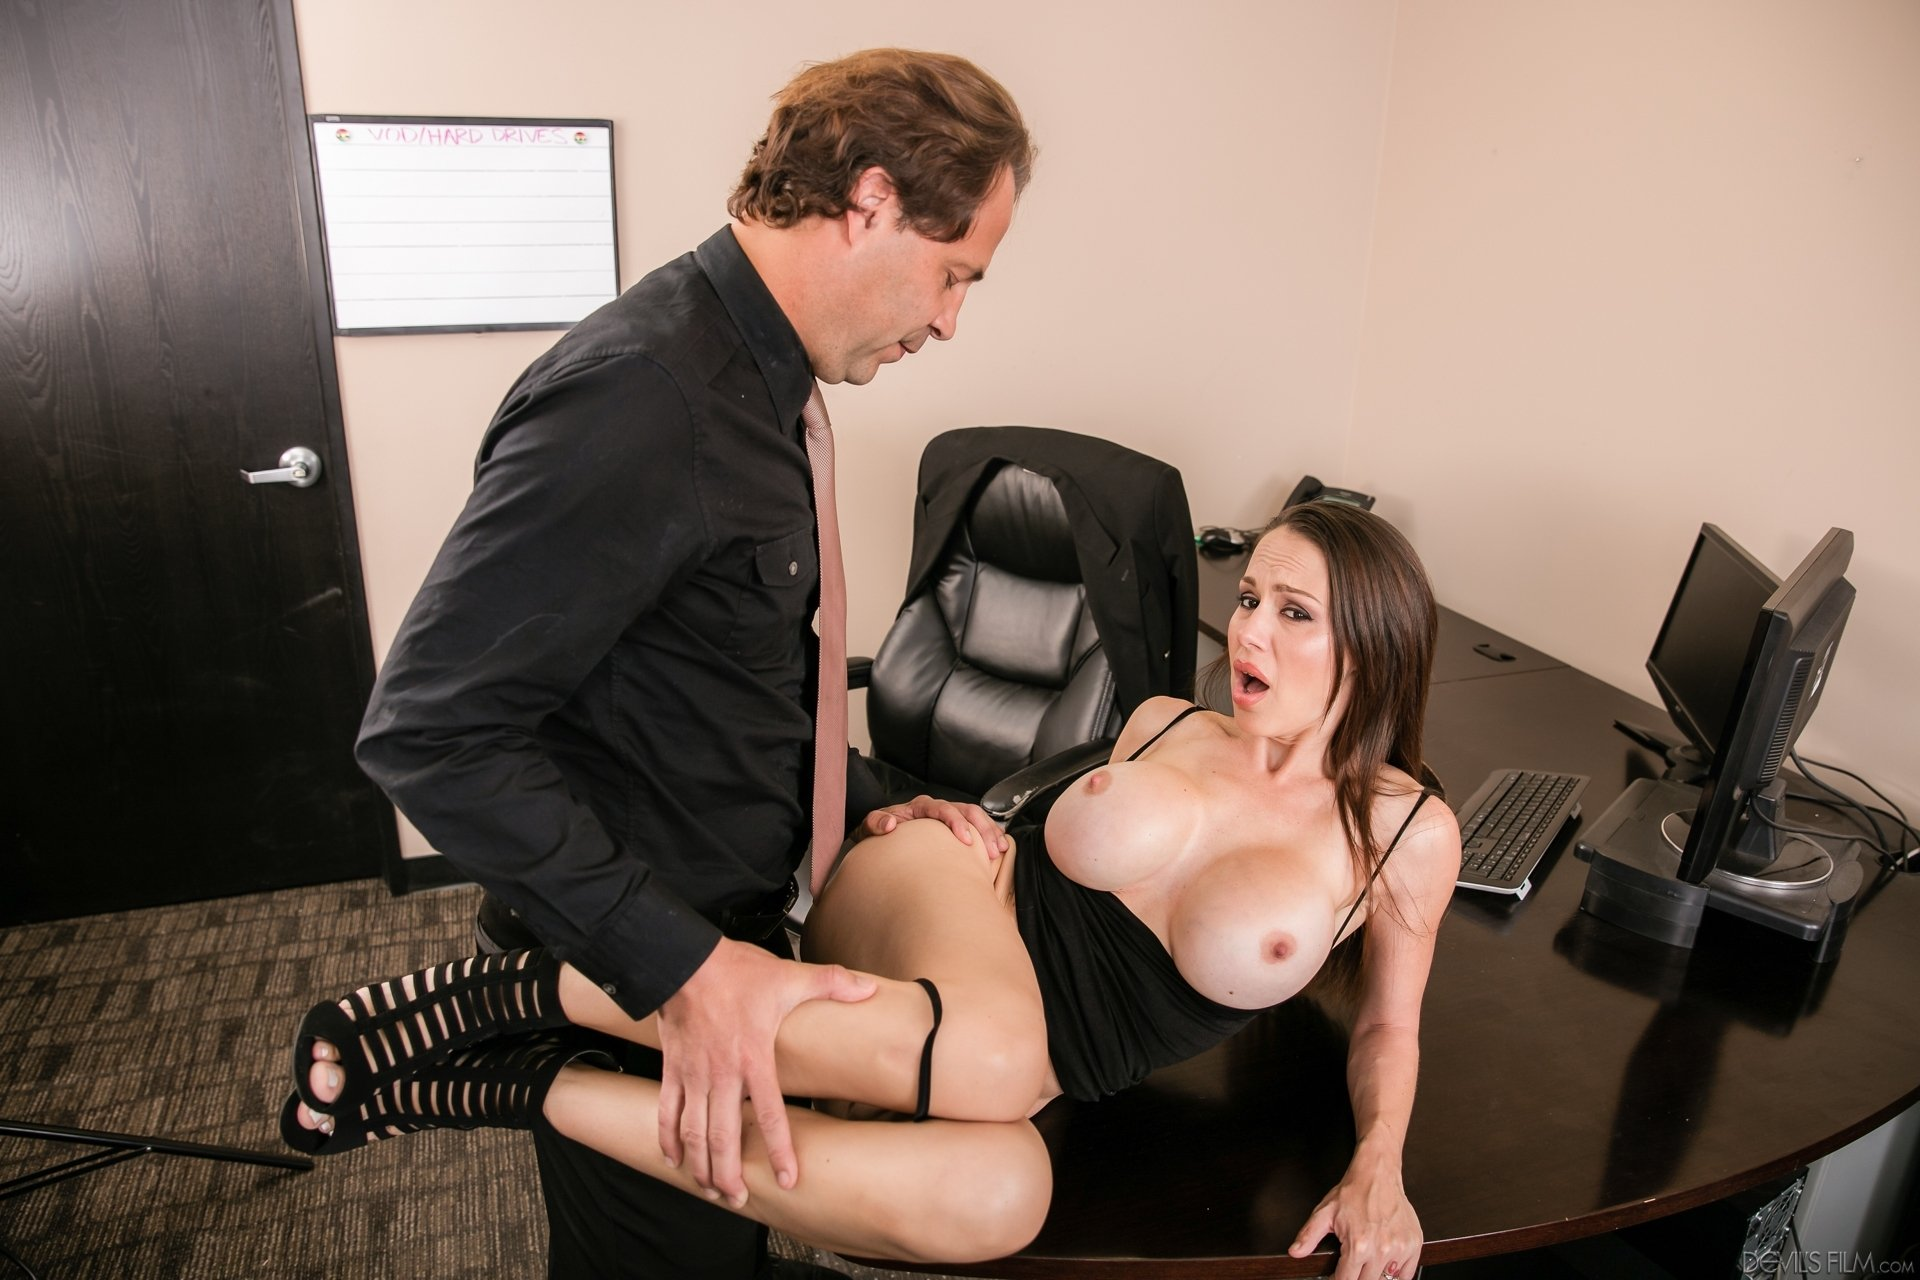 xxx milf porn movies add photo